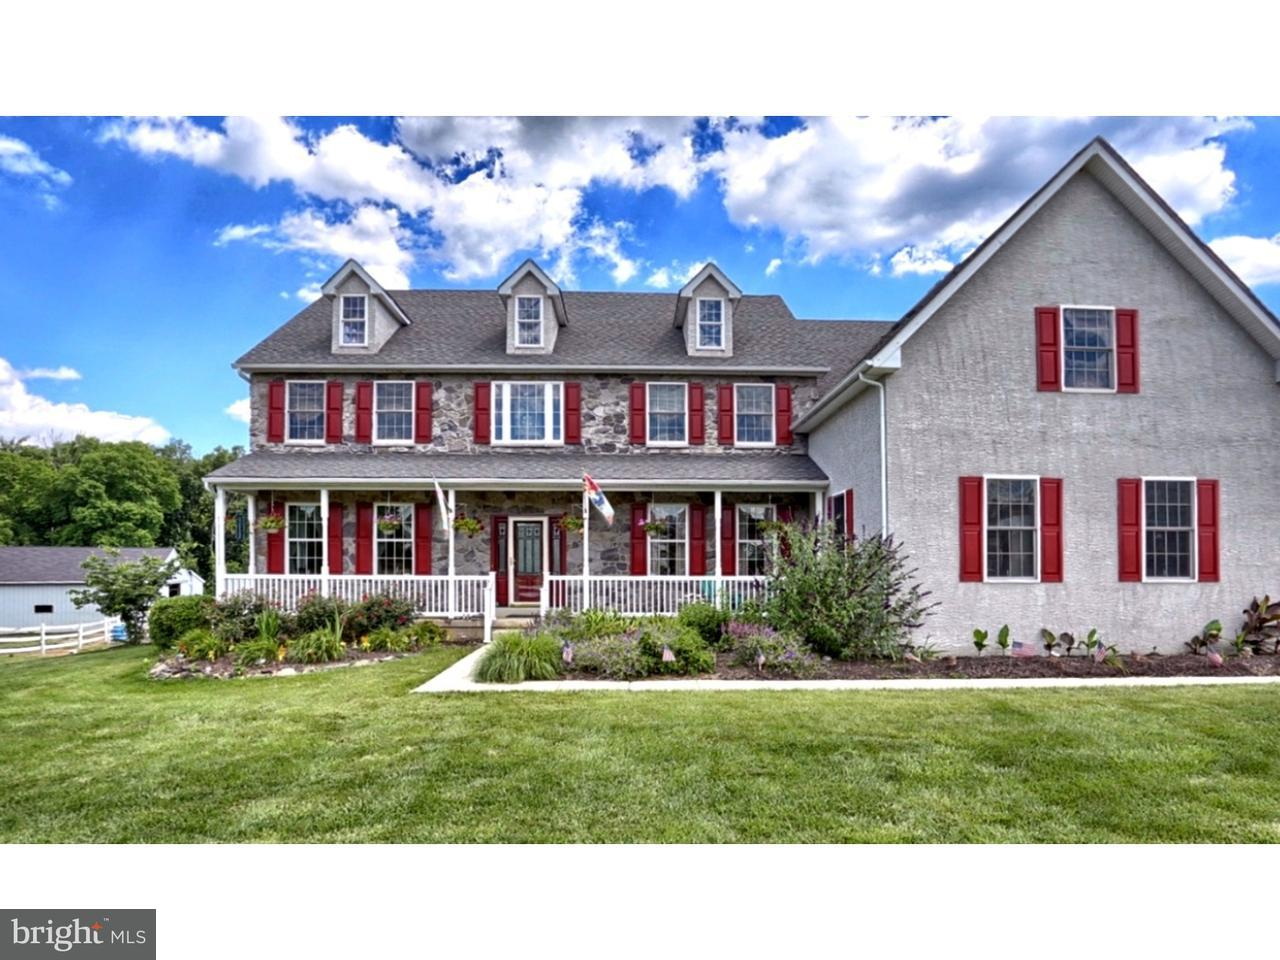 Single Family Home for Sale at 810 TRISTEN WAY Schwenksville, Pennsylvania 19473 United States